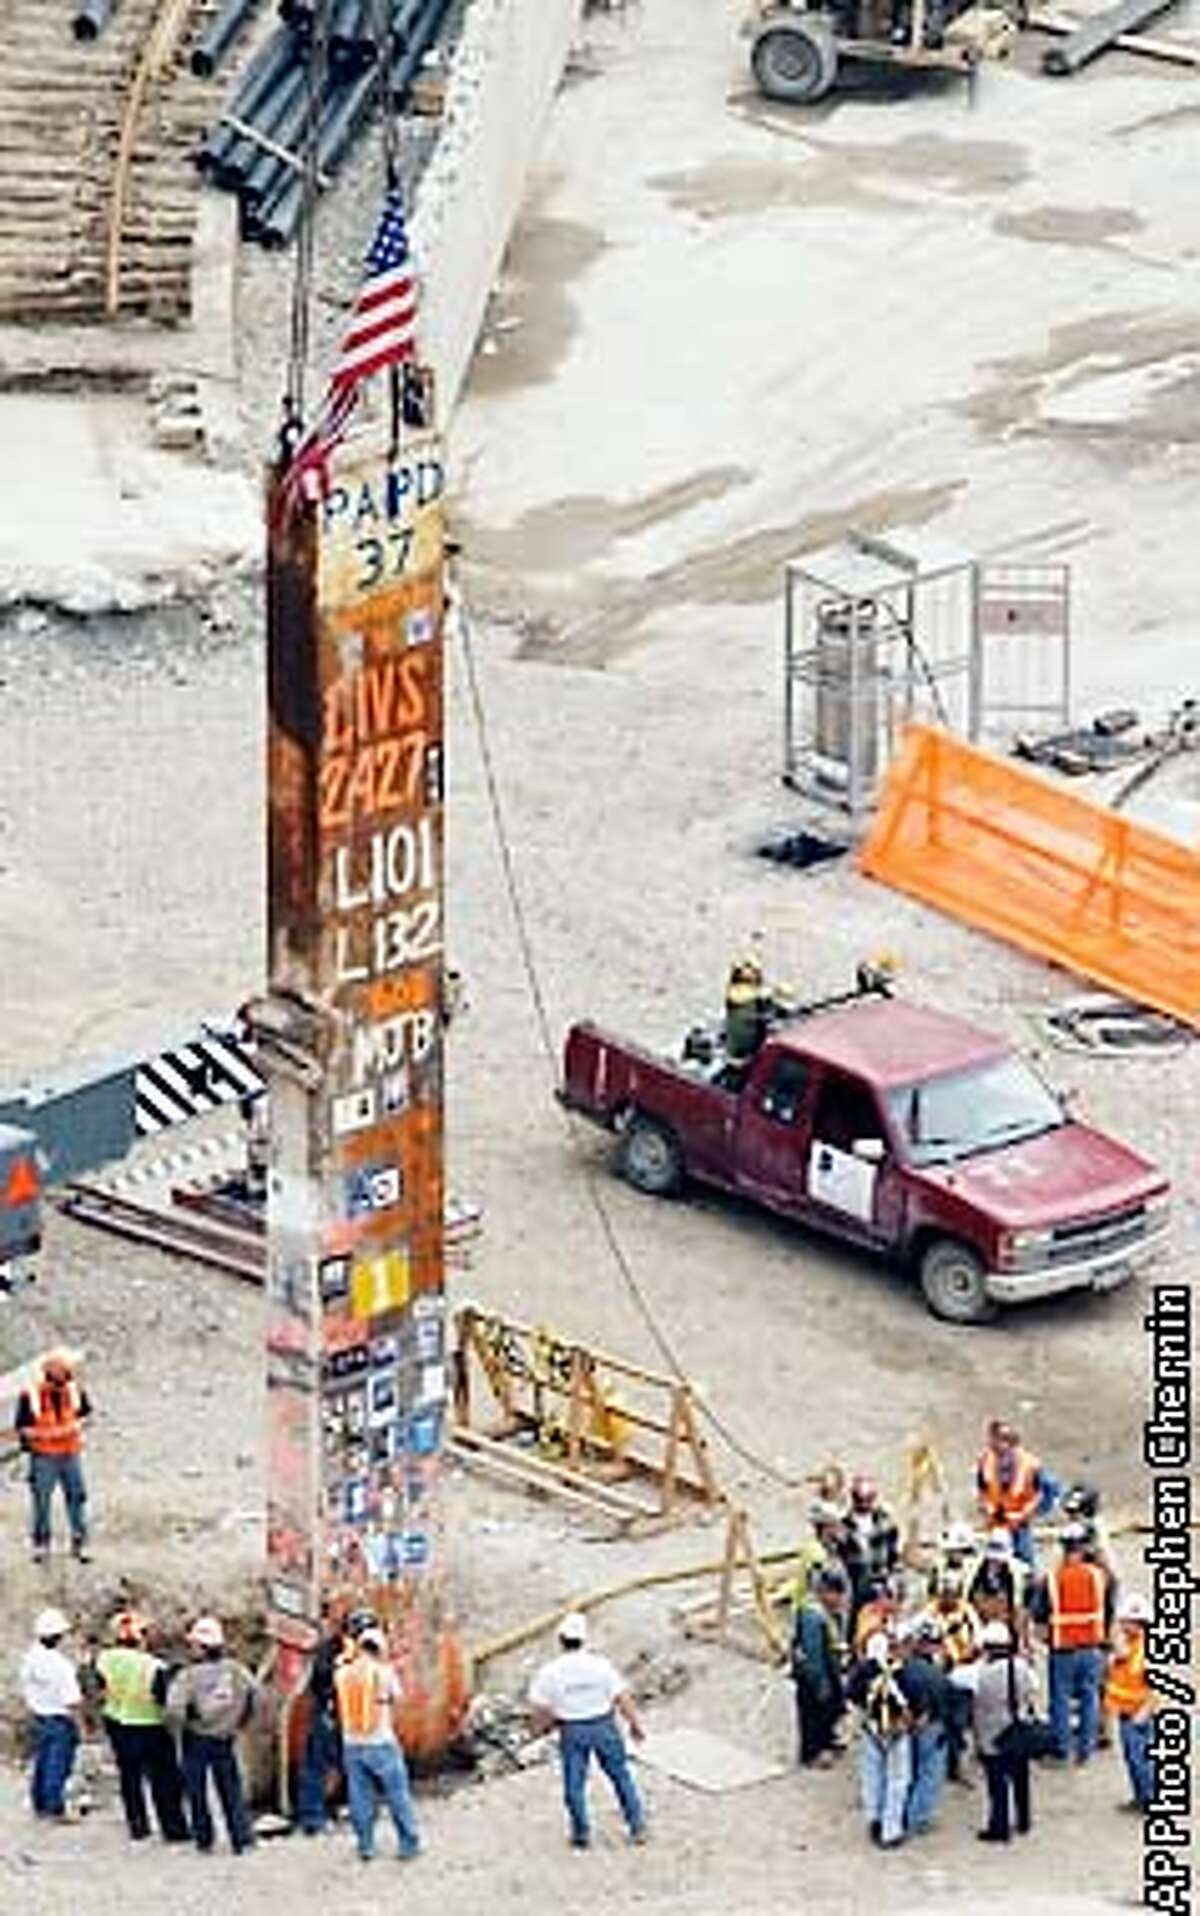 Workers gather around the last steel beam left standing at the World Trade Center disaster site Tuesday, May 28, 2002 in New York. The beam is set for demolition Tuesday evening in the first of a series of ceremonies marking the end of the sorrowful, 8 1/2 month cleanup. (AP Photo/Stephen Chernin)